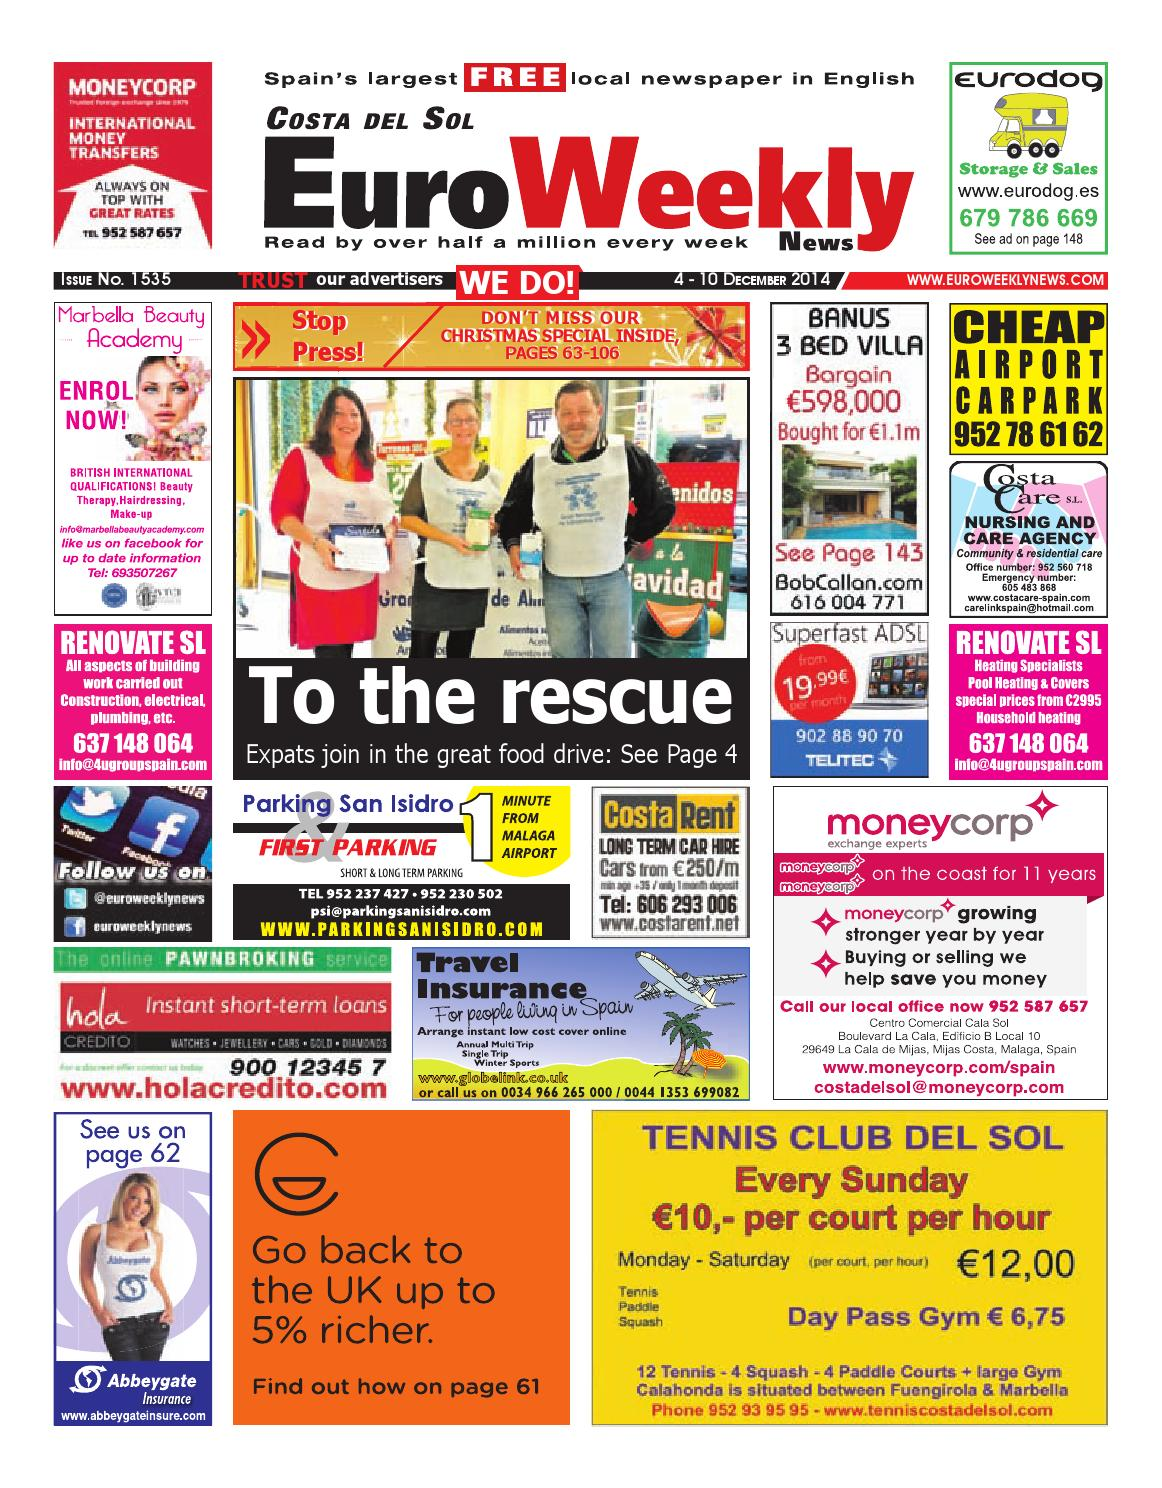 Euro Weekly News - Costa del Sol 4 - 10 December 2014 Issue 1535 by Euro  Weekly News Media S.A. - issuu